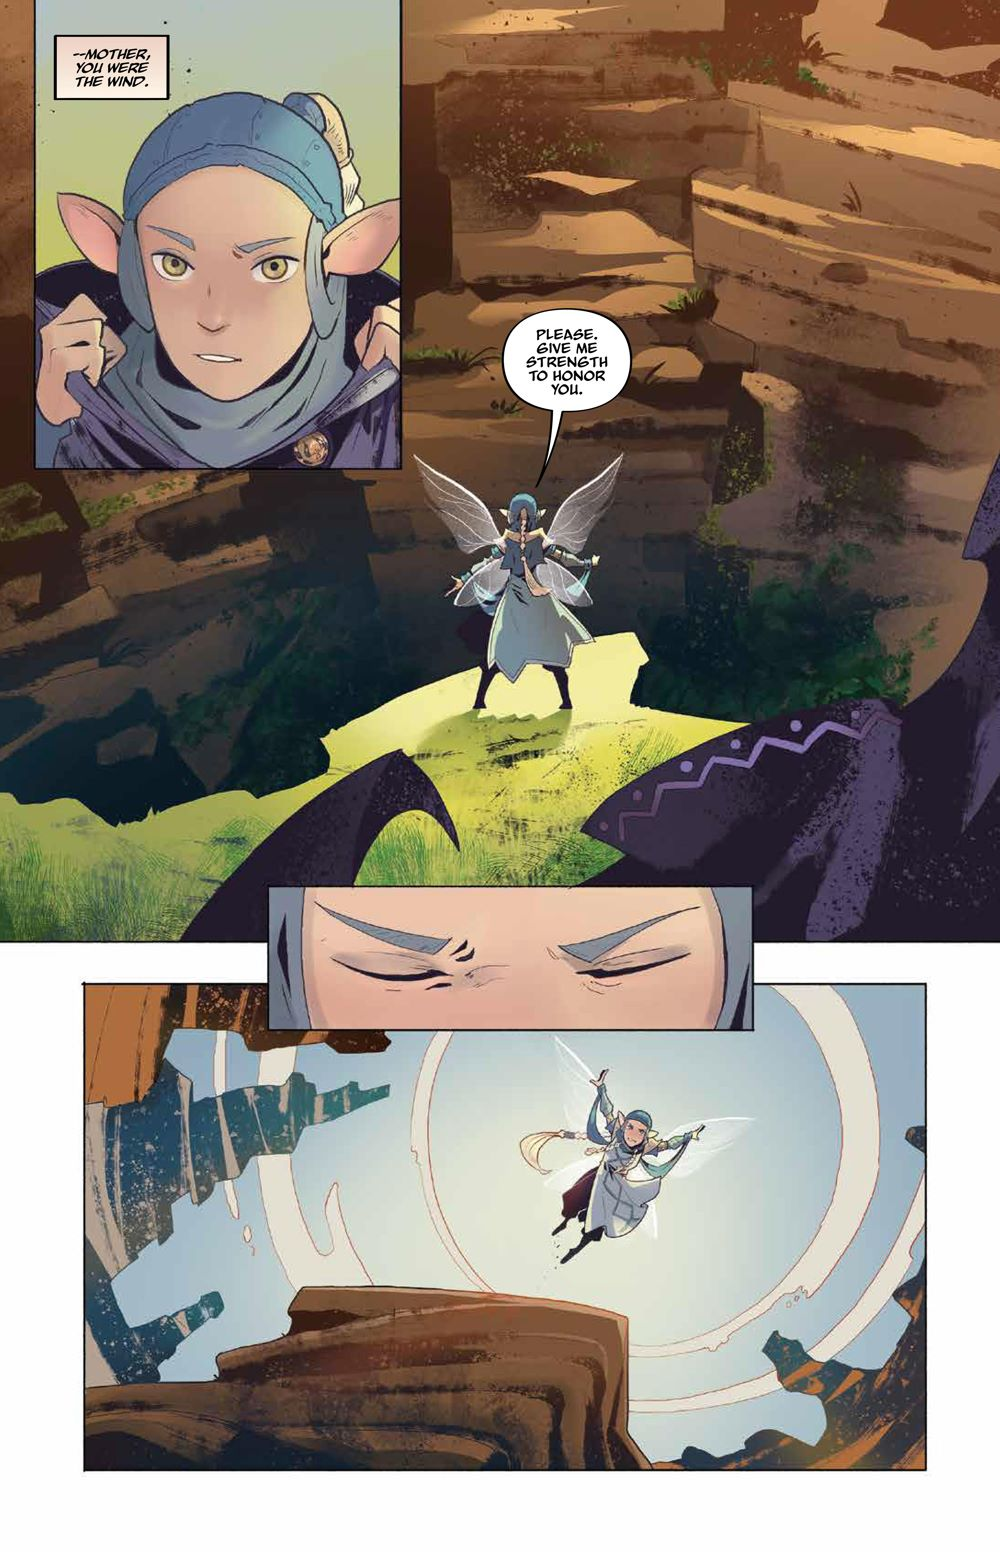 DarkCrystal_AgeResistance_v3_Journey_PRESS_10 ComicList Previews: JIM HENSON'S THE DARK CRYSTAL AGE OF RESISTANCE VOLUME 3 THE JOURNEY INTO THE MONDO LEVIADIN HC